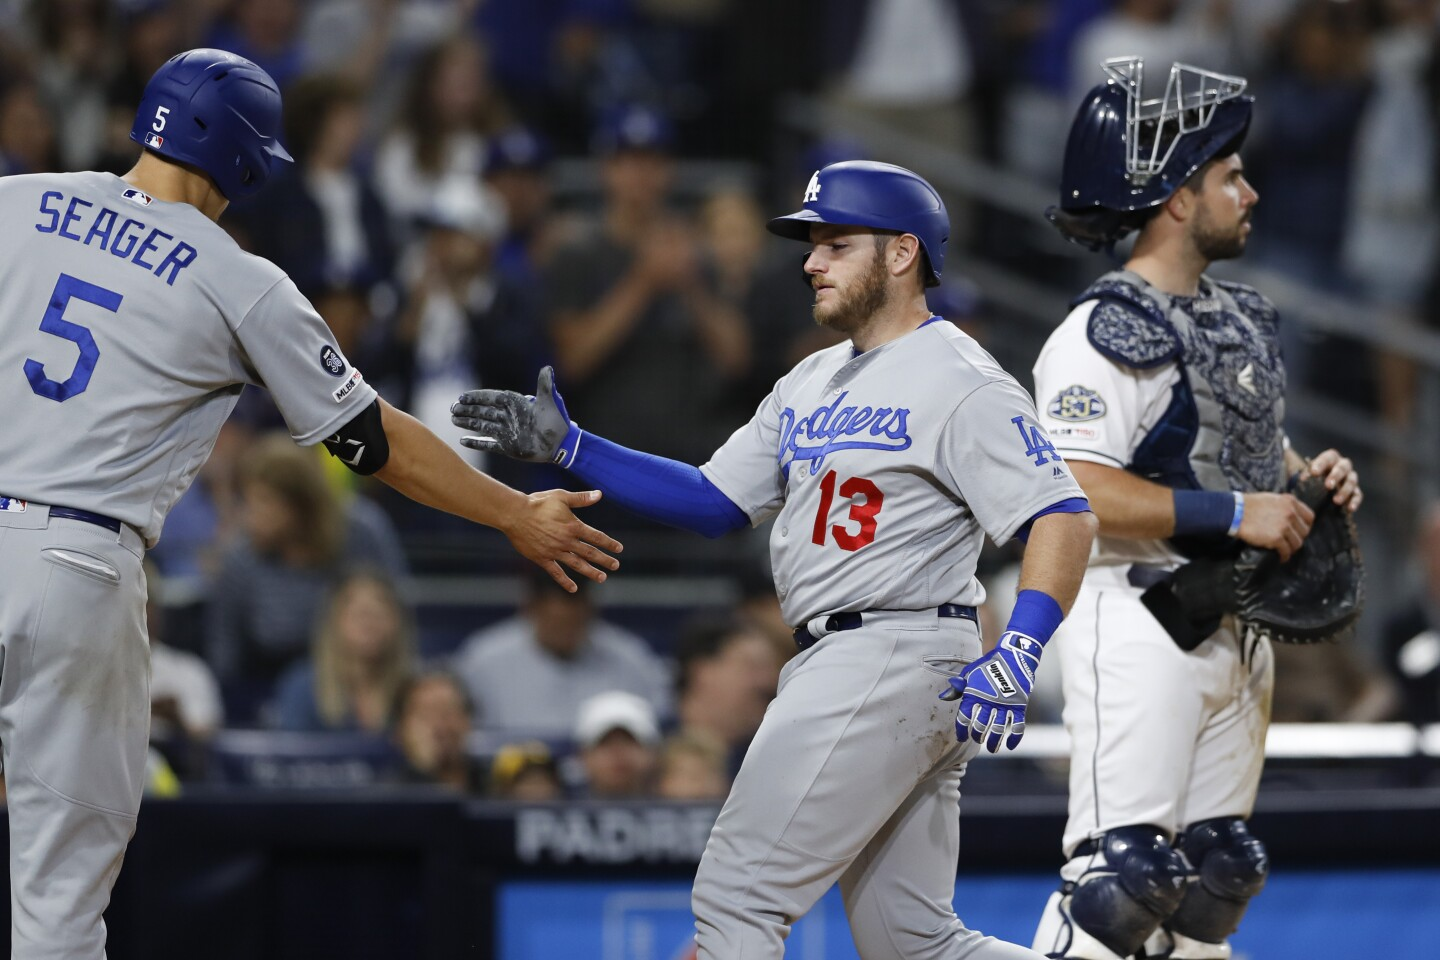 The Los Angeles Dodgers' Max Muncy is greeted by teammate Corey Seager (5) after hitting a three-run home run during the sixth inning of a baseball game against the San Diego Padres, Saturday, May 4, 2019, in San Diego. (AP Photo/Gregory Bull)